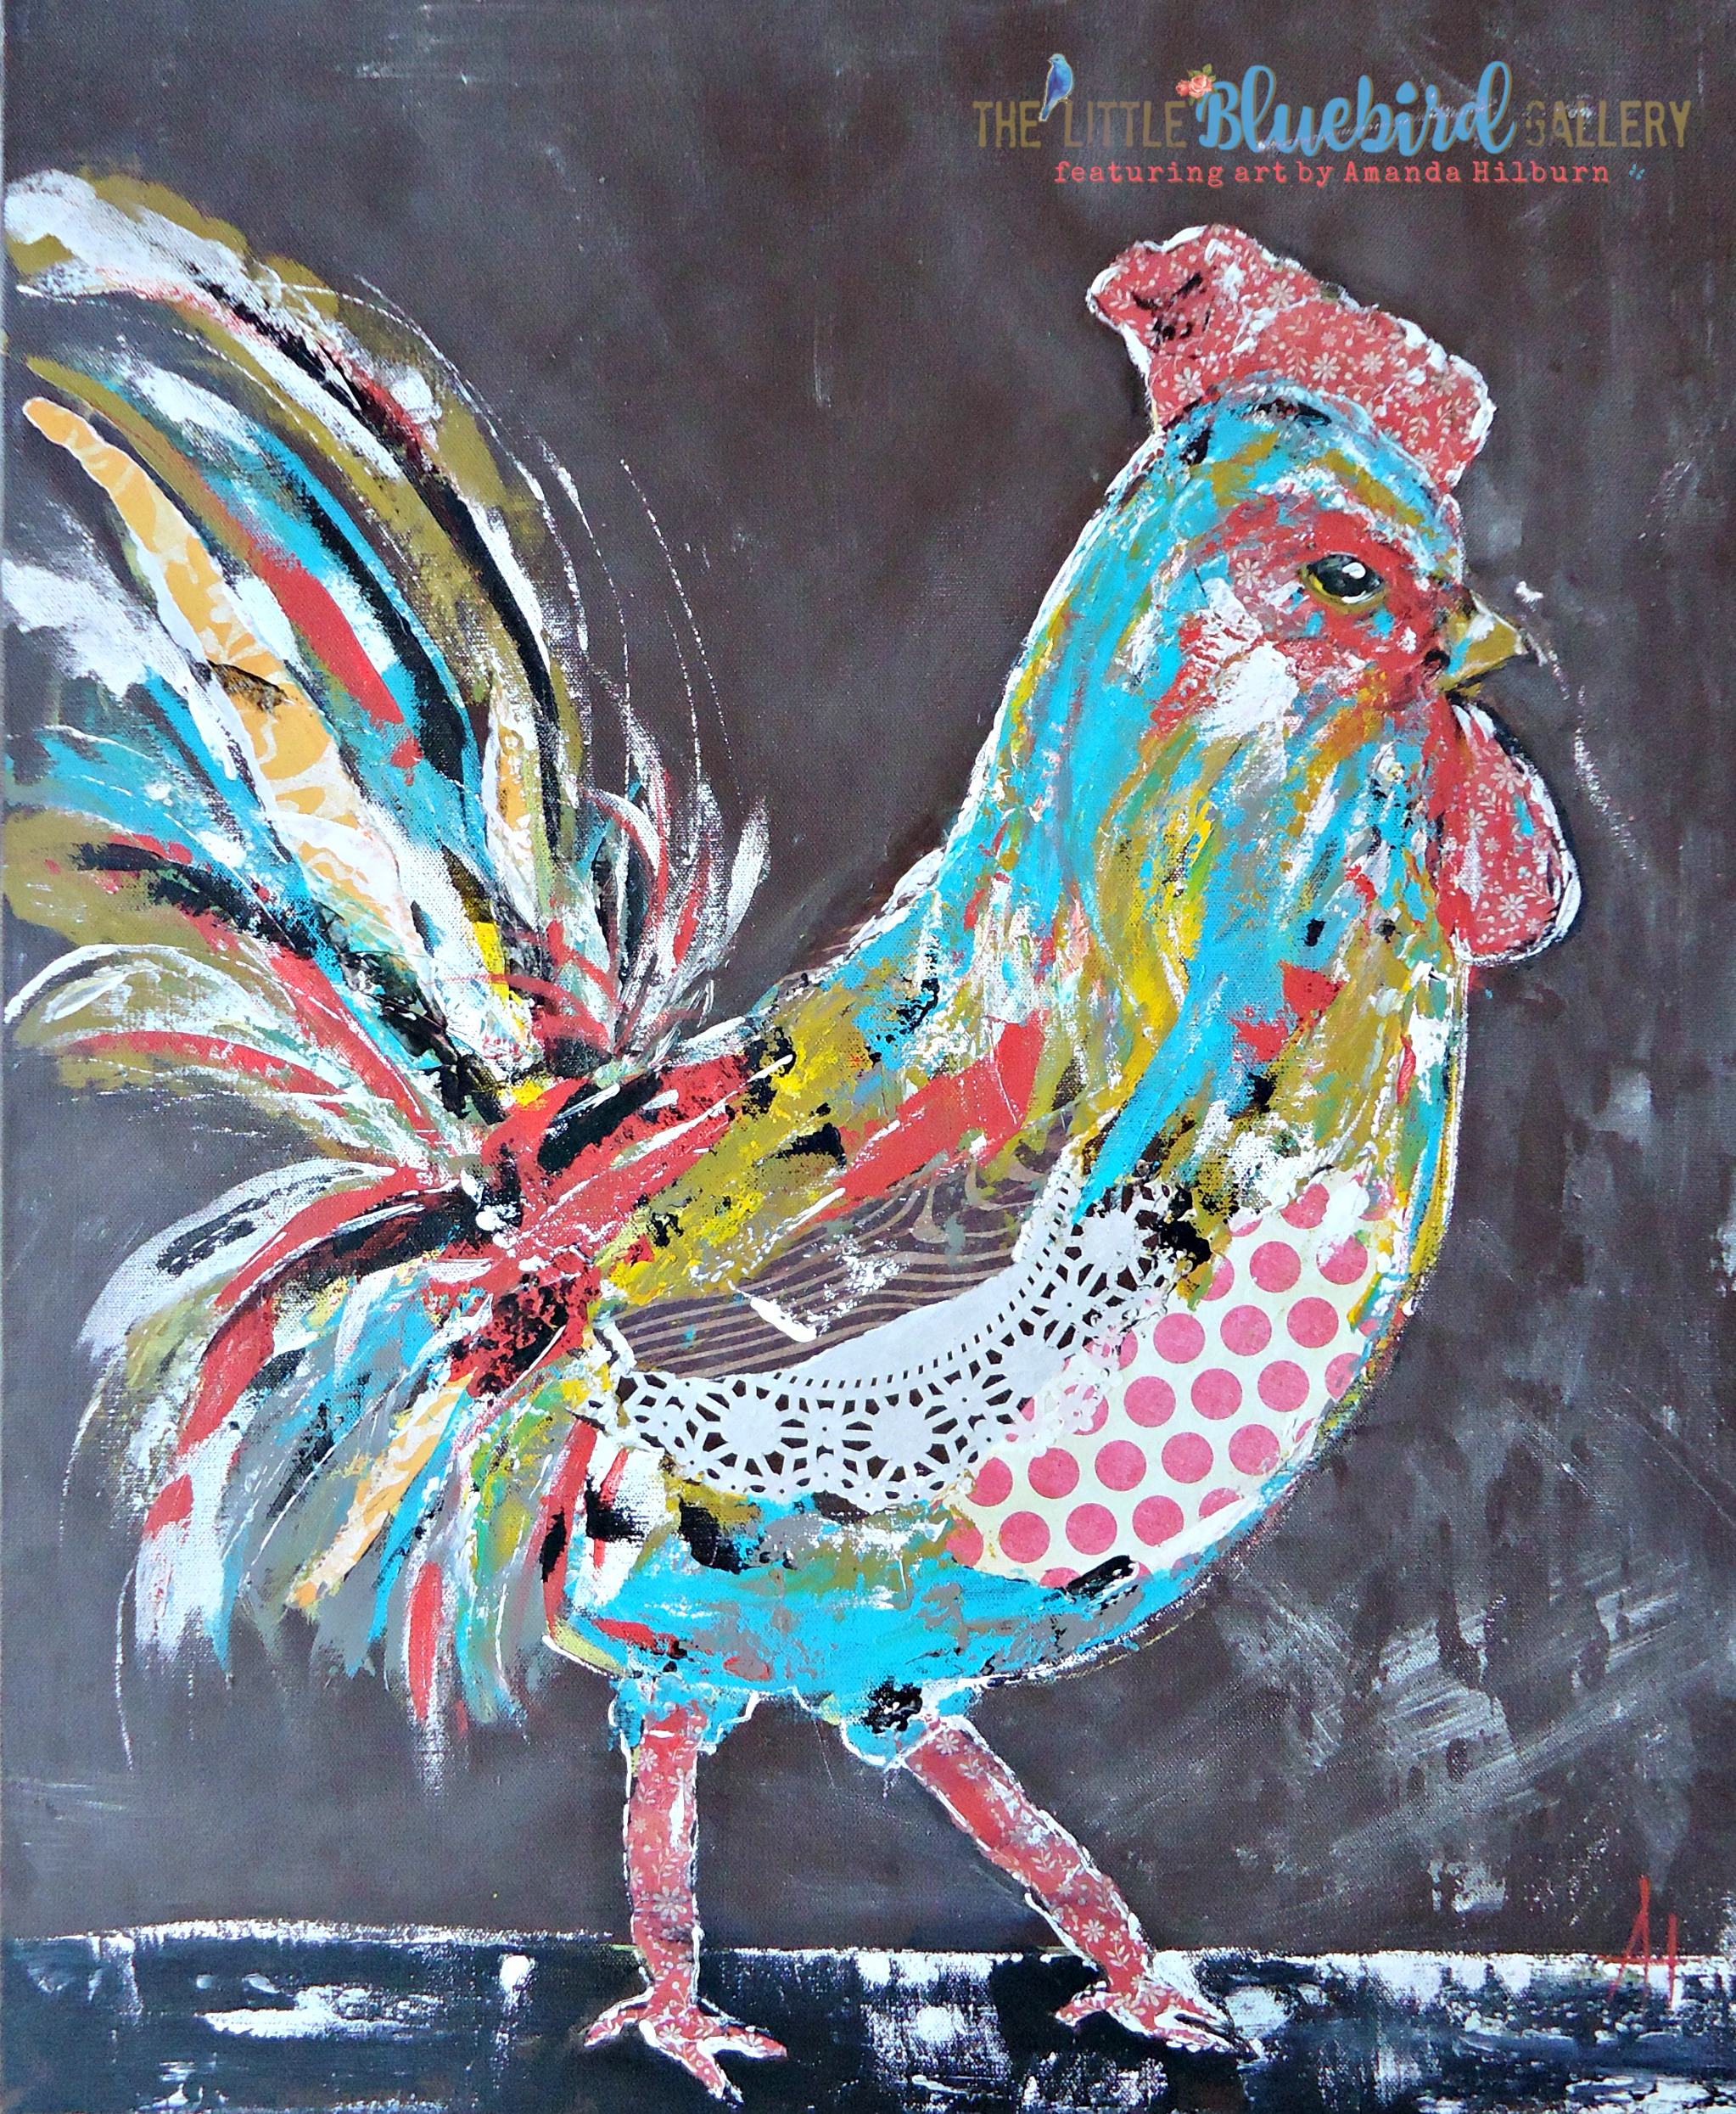 Mr. Shabby the Rooster